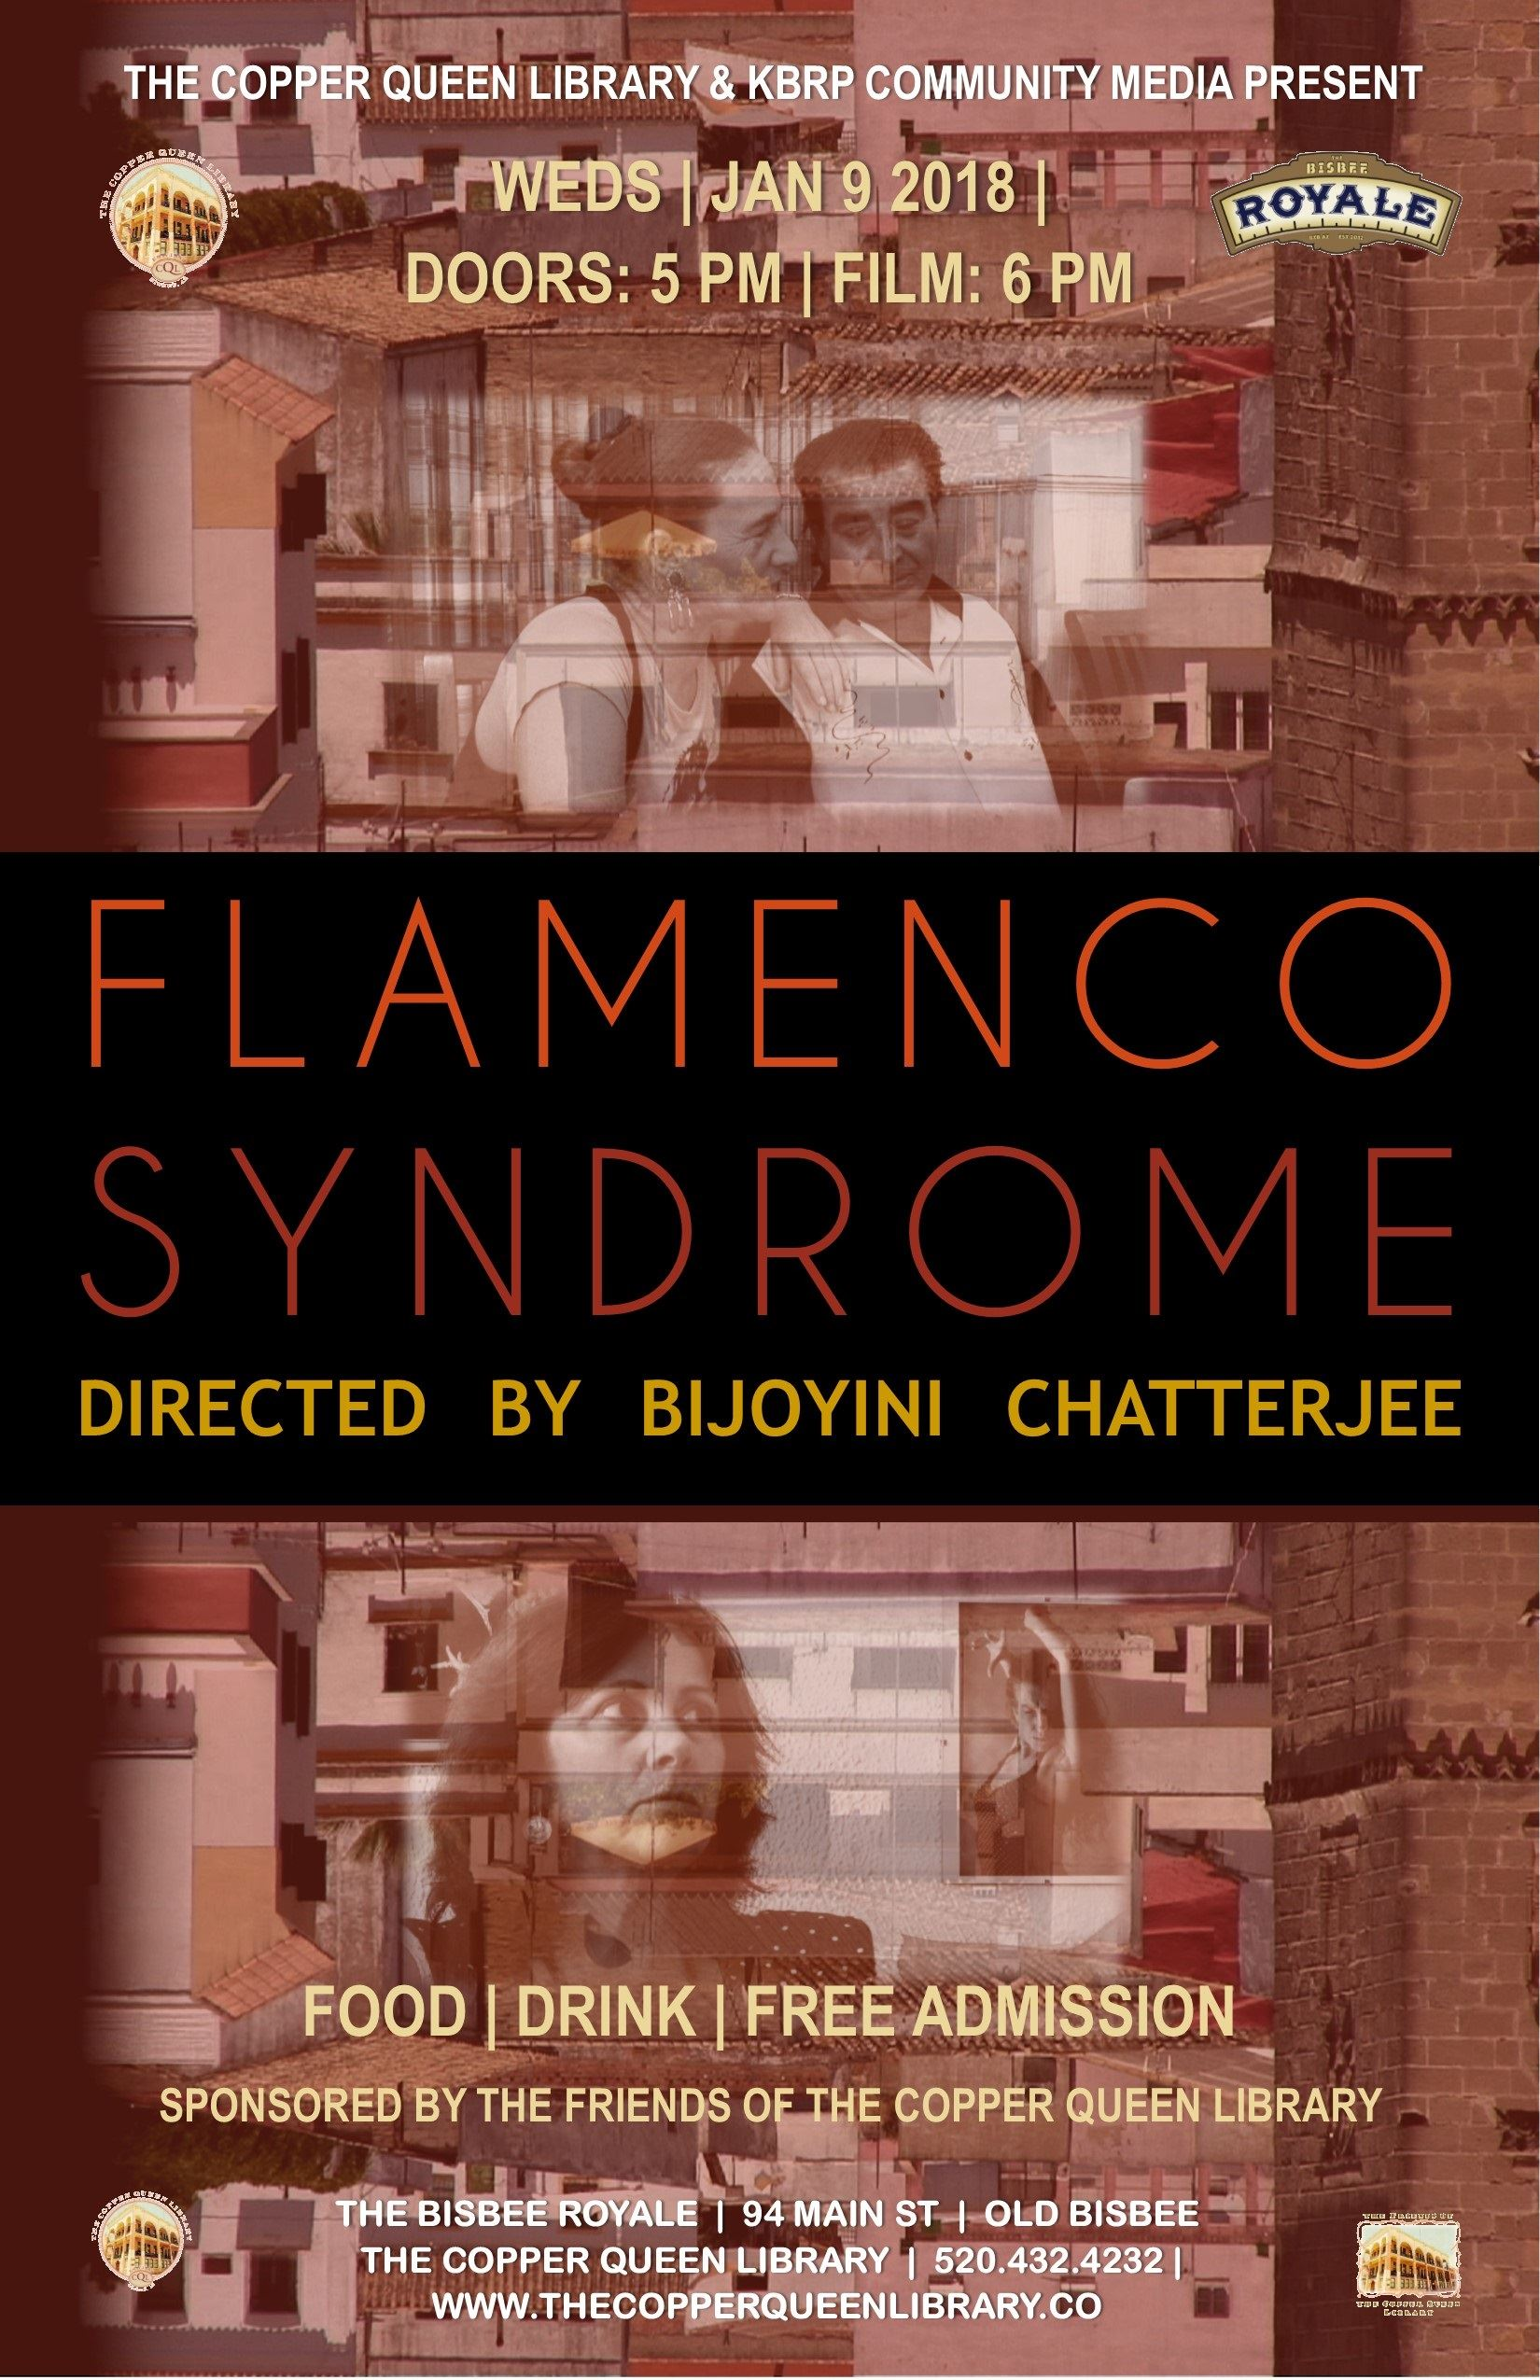 FLAMENCO SYNDROME POSTER ART CHATERJEE